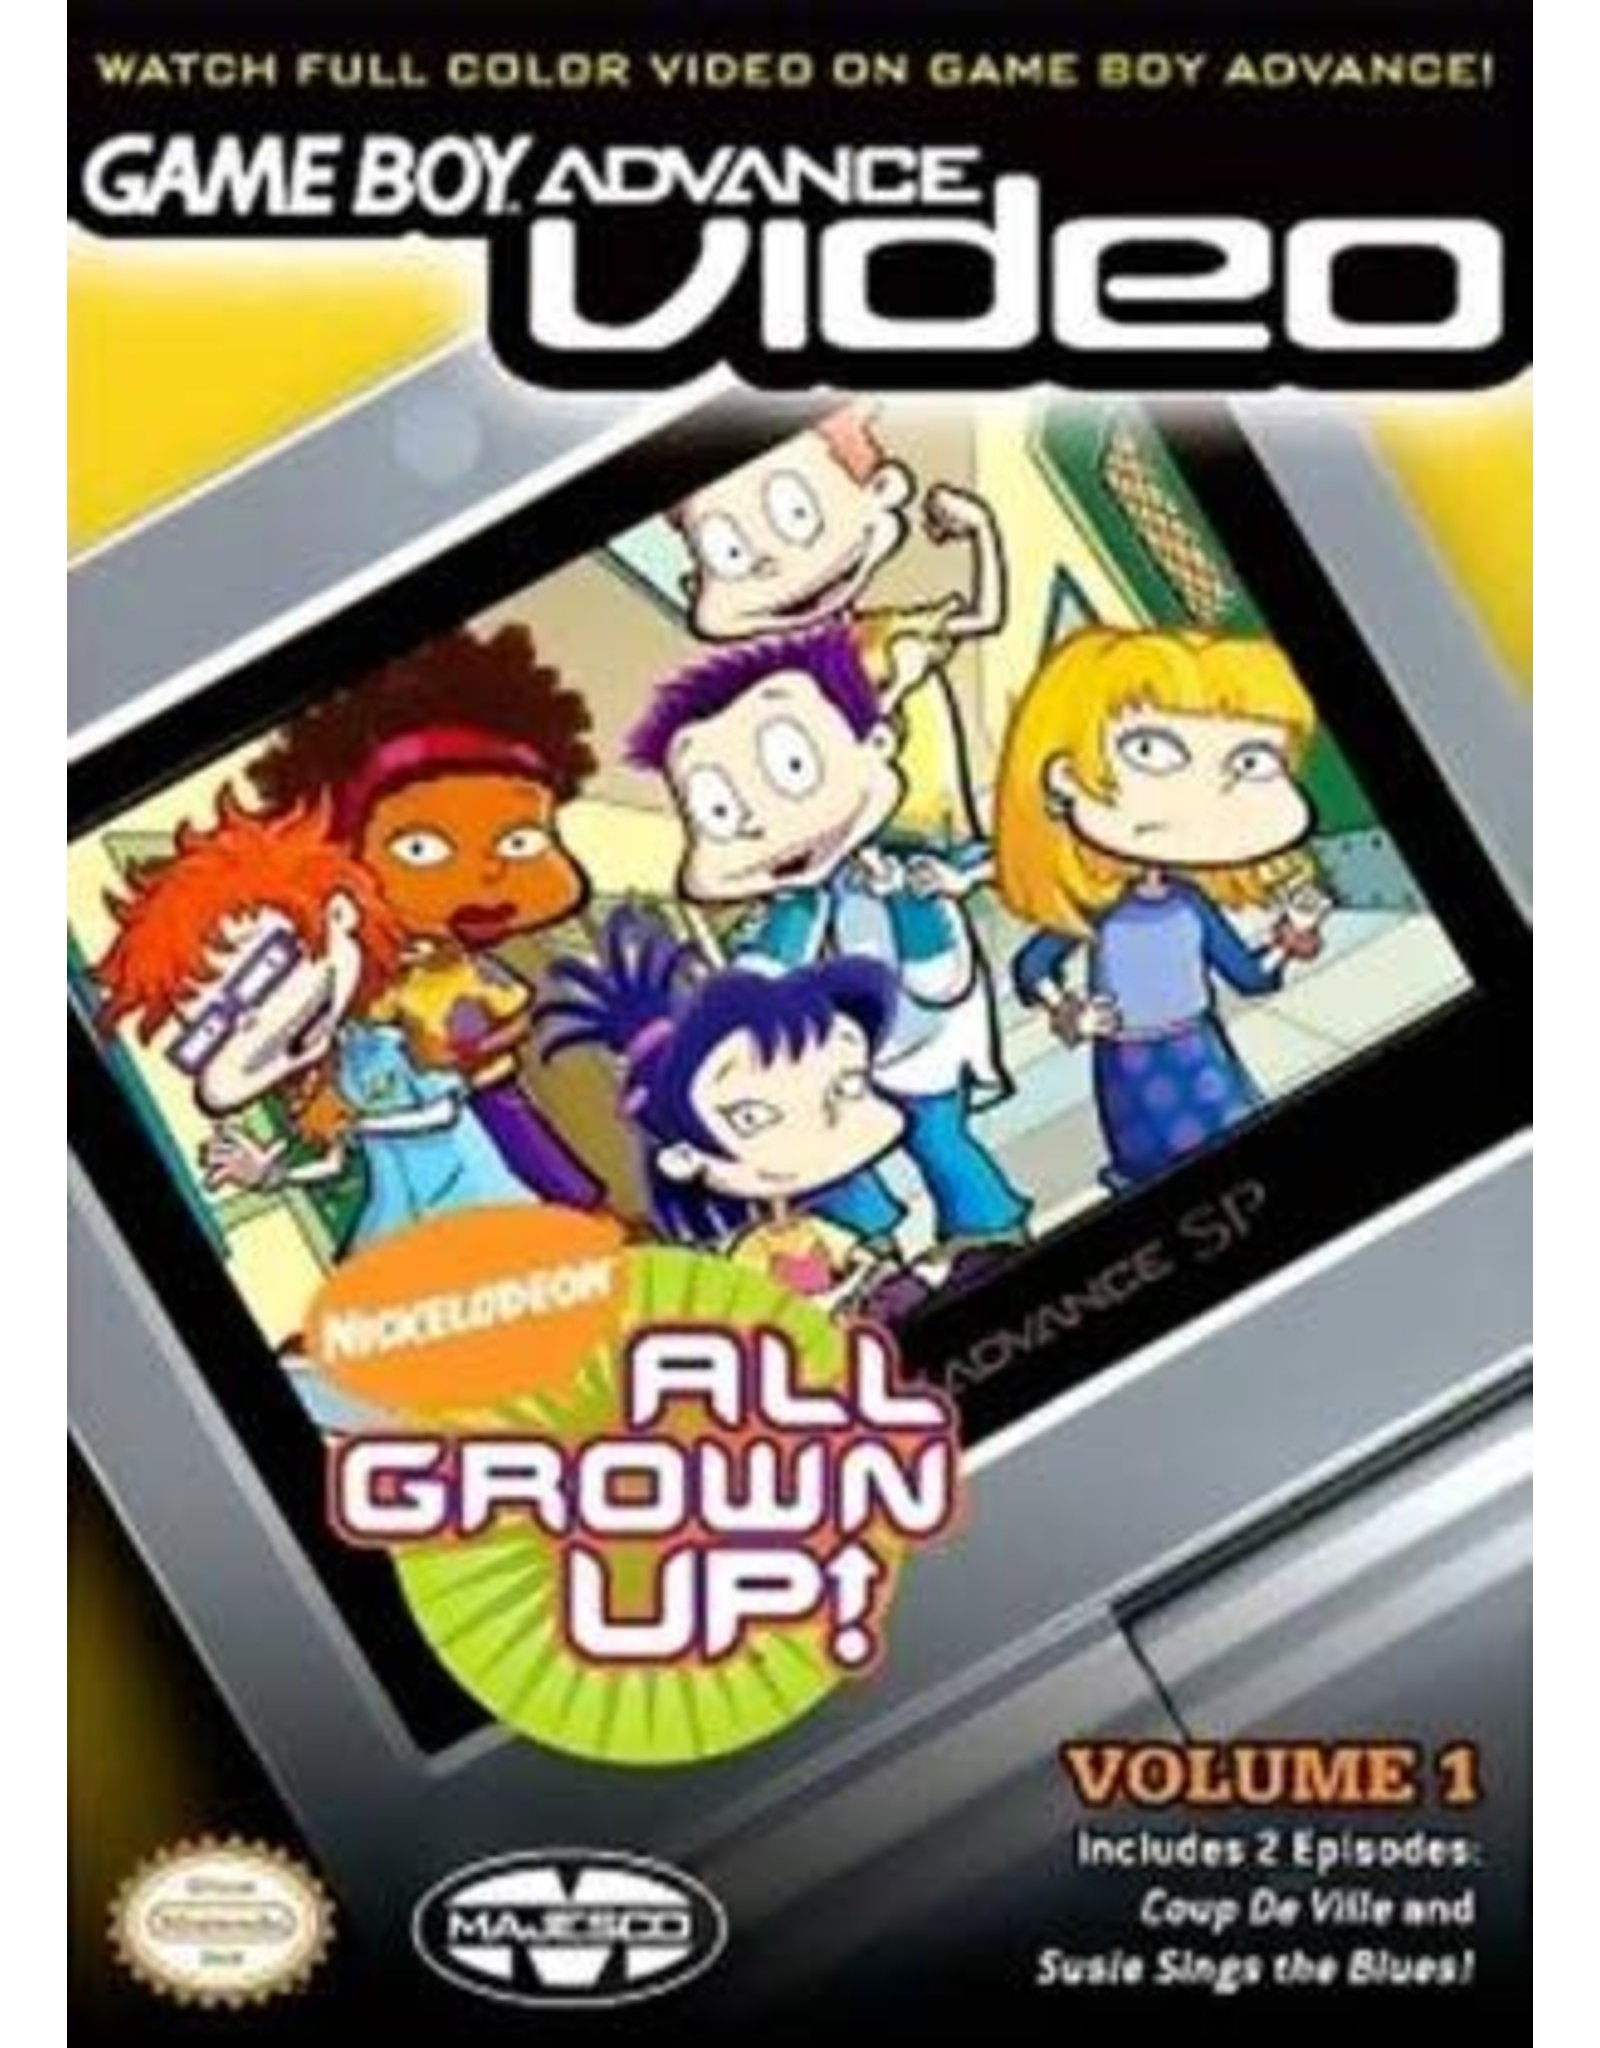 GameBoy Advance All Grown Up Volume 1 (Cart Only)